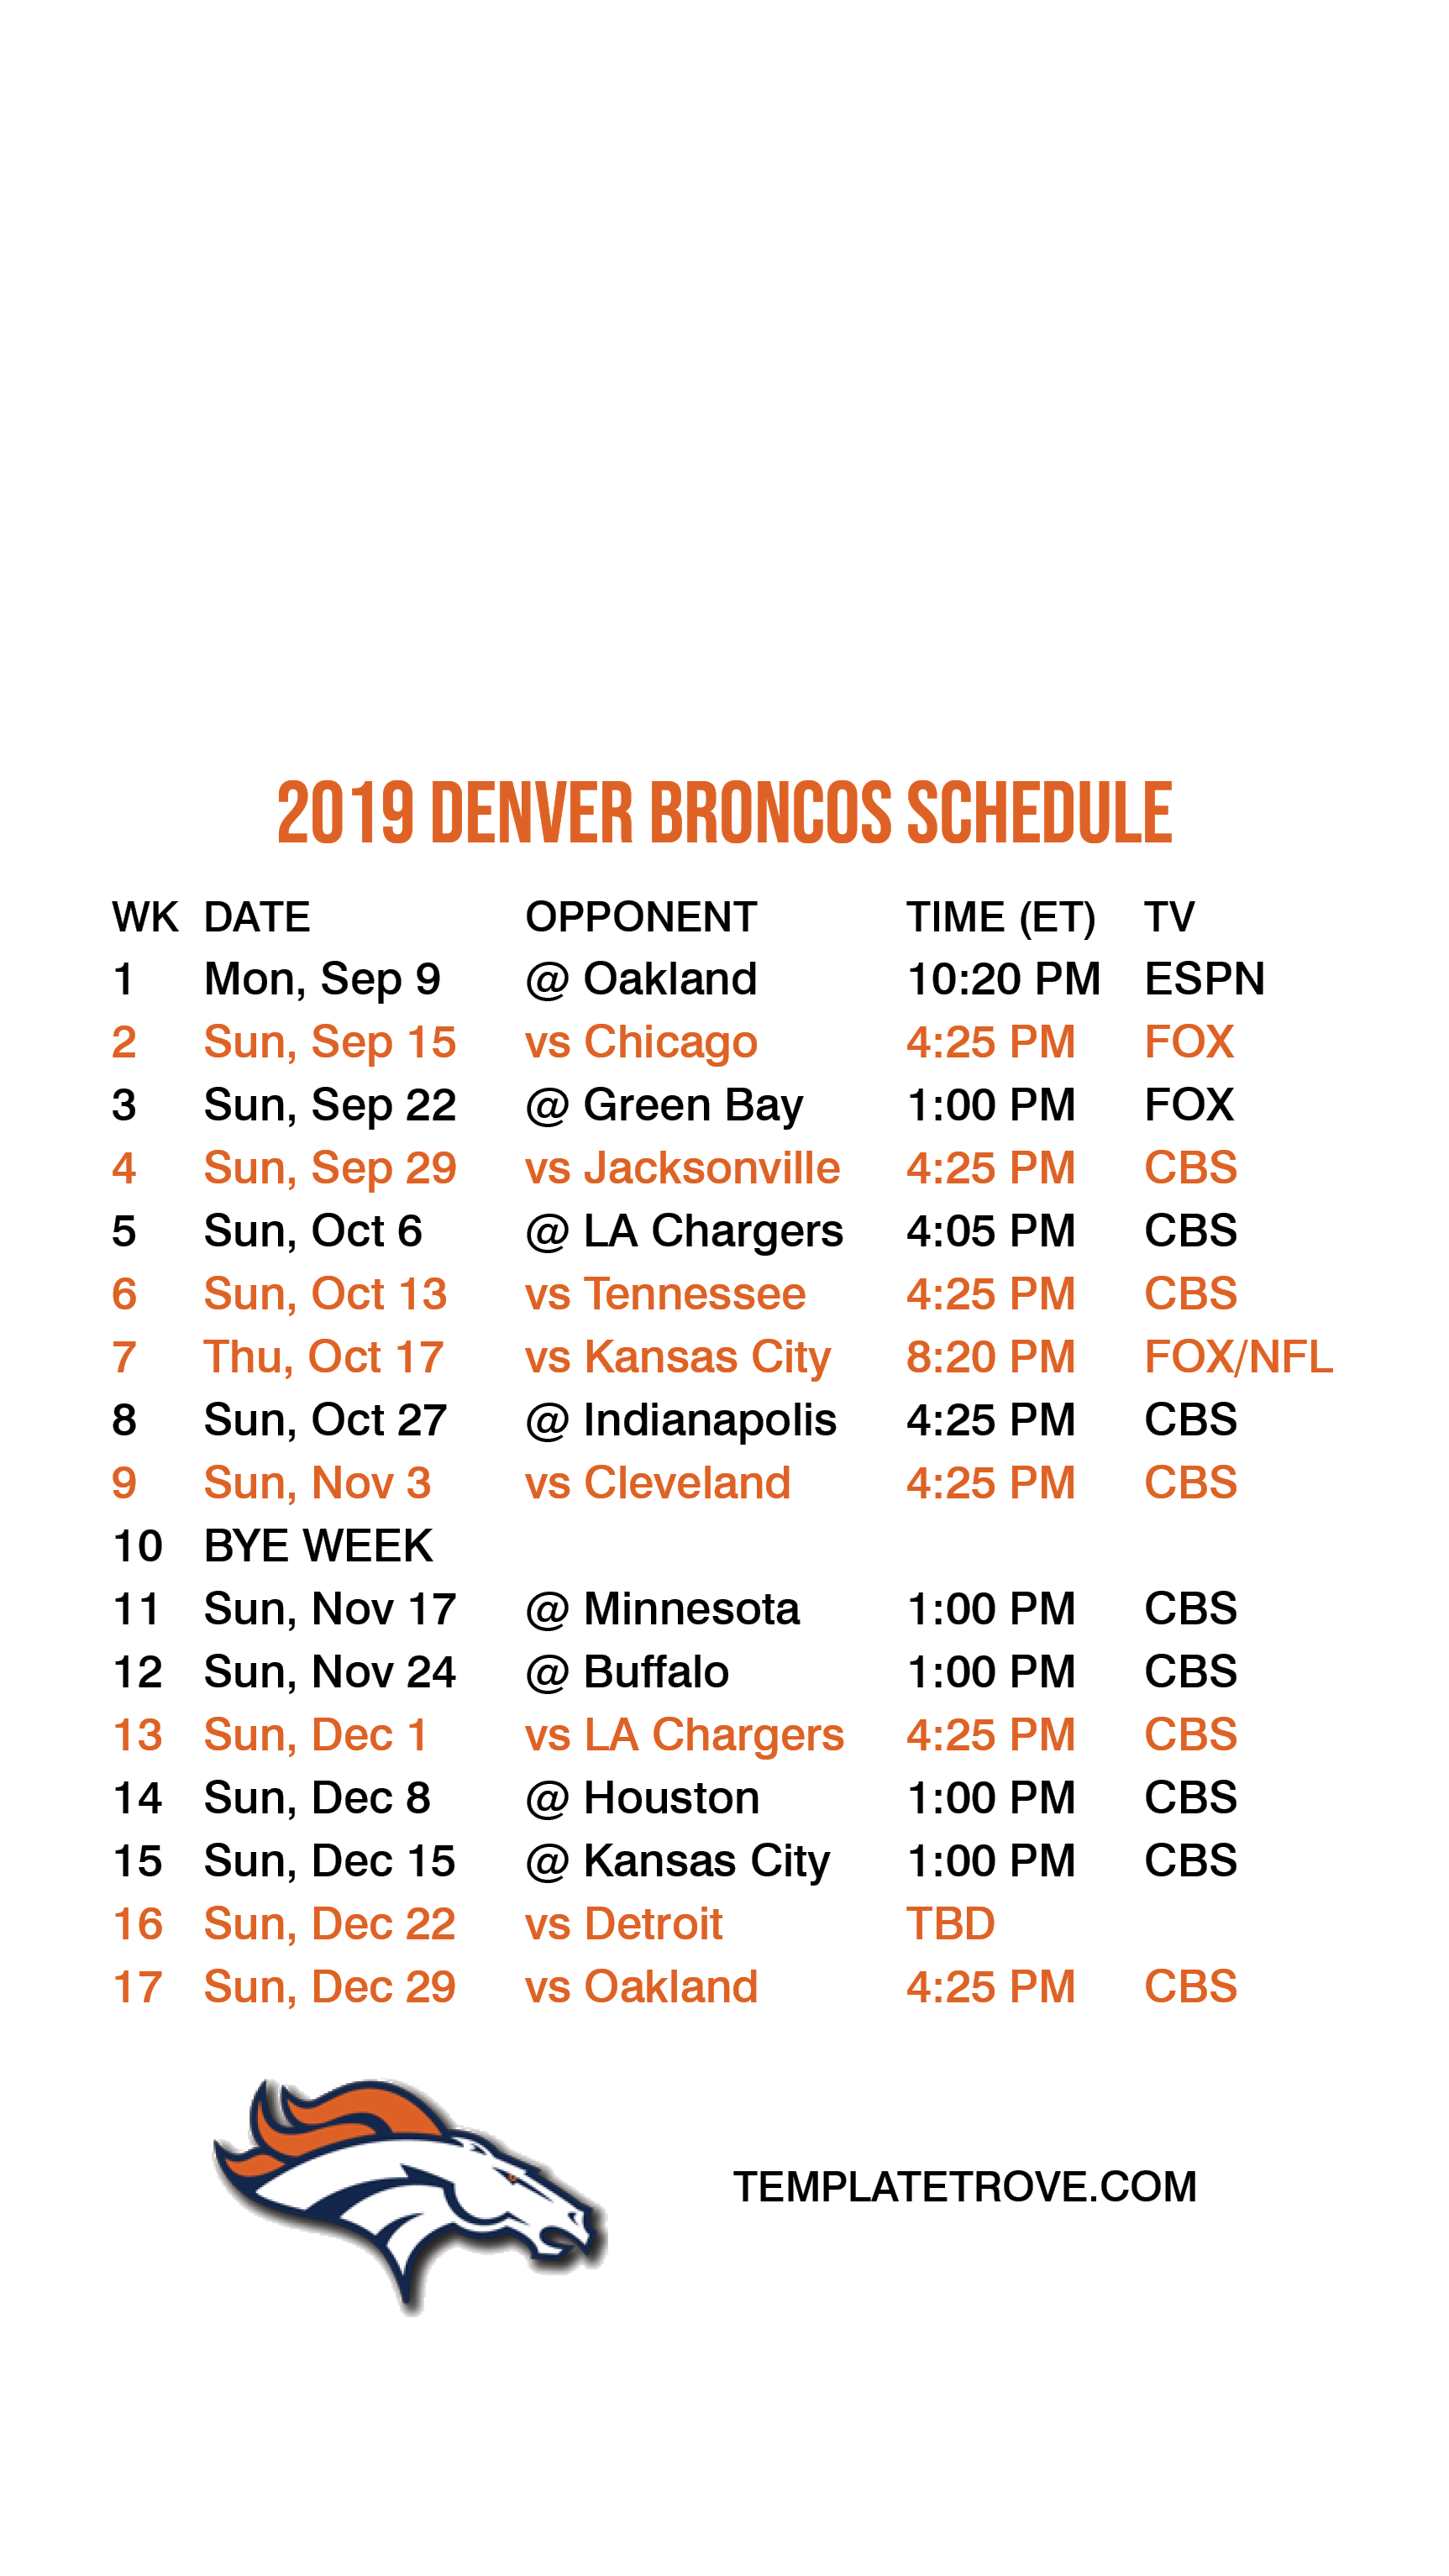 graphic relating to Denver Broncos Schedule Printable titled 2019-2020 Denver Broncos Lock Show Agenda for apple iphone 6-7